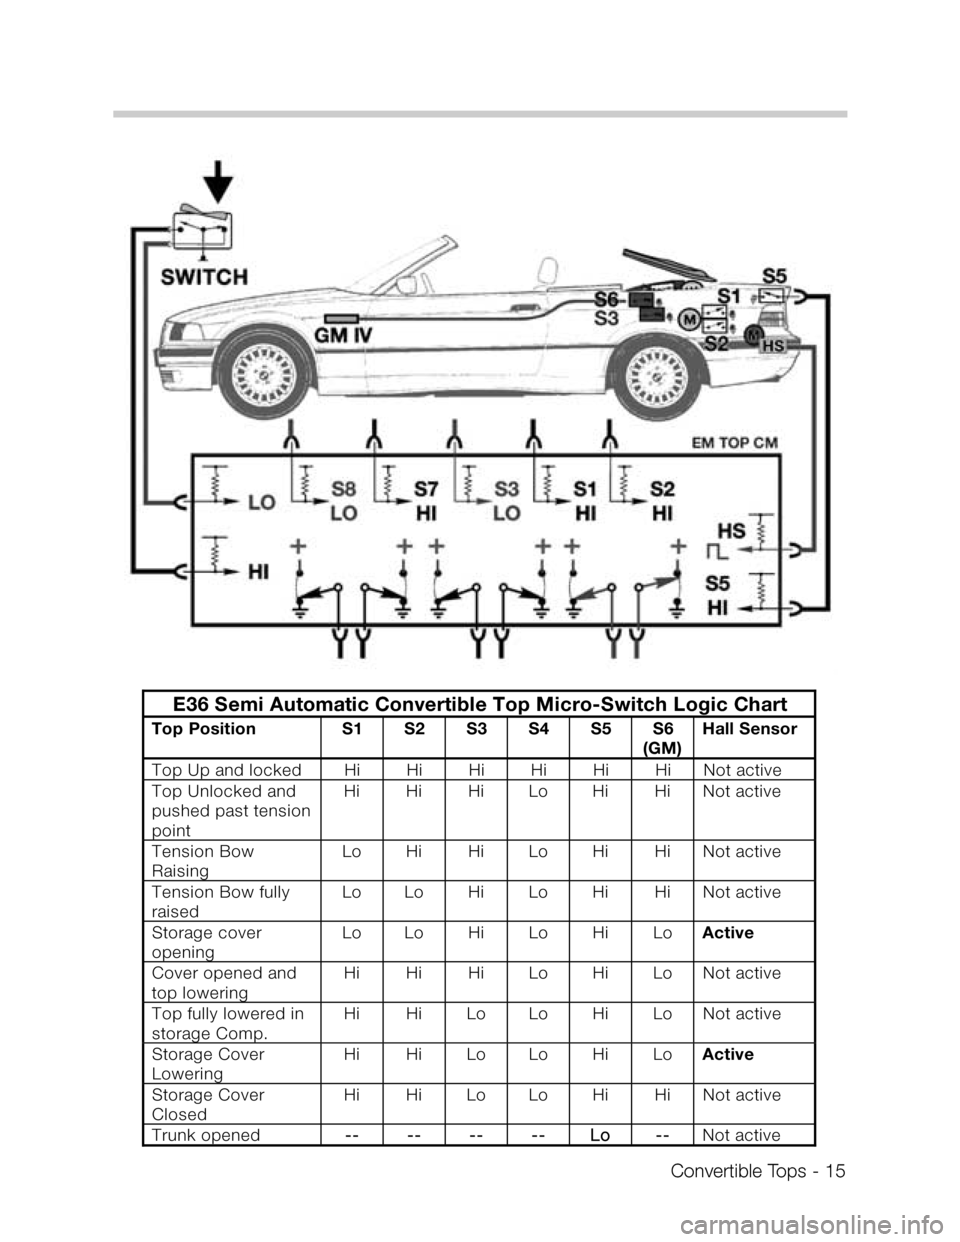 BMW Z3 CONVERTIBLE 1995 E36 Convertible Tops Manual, Page 15